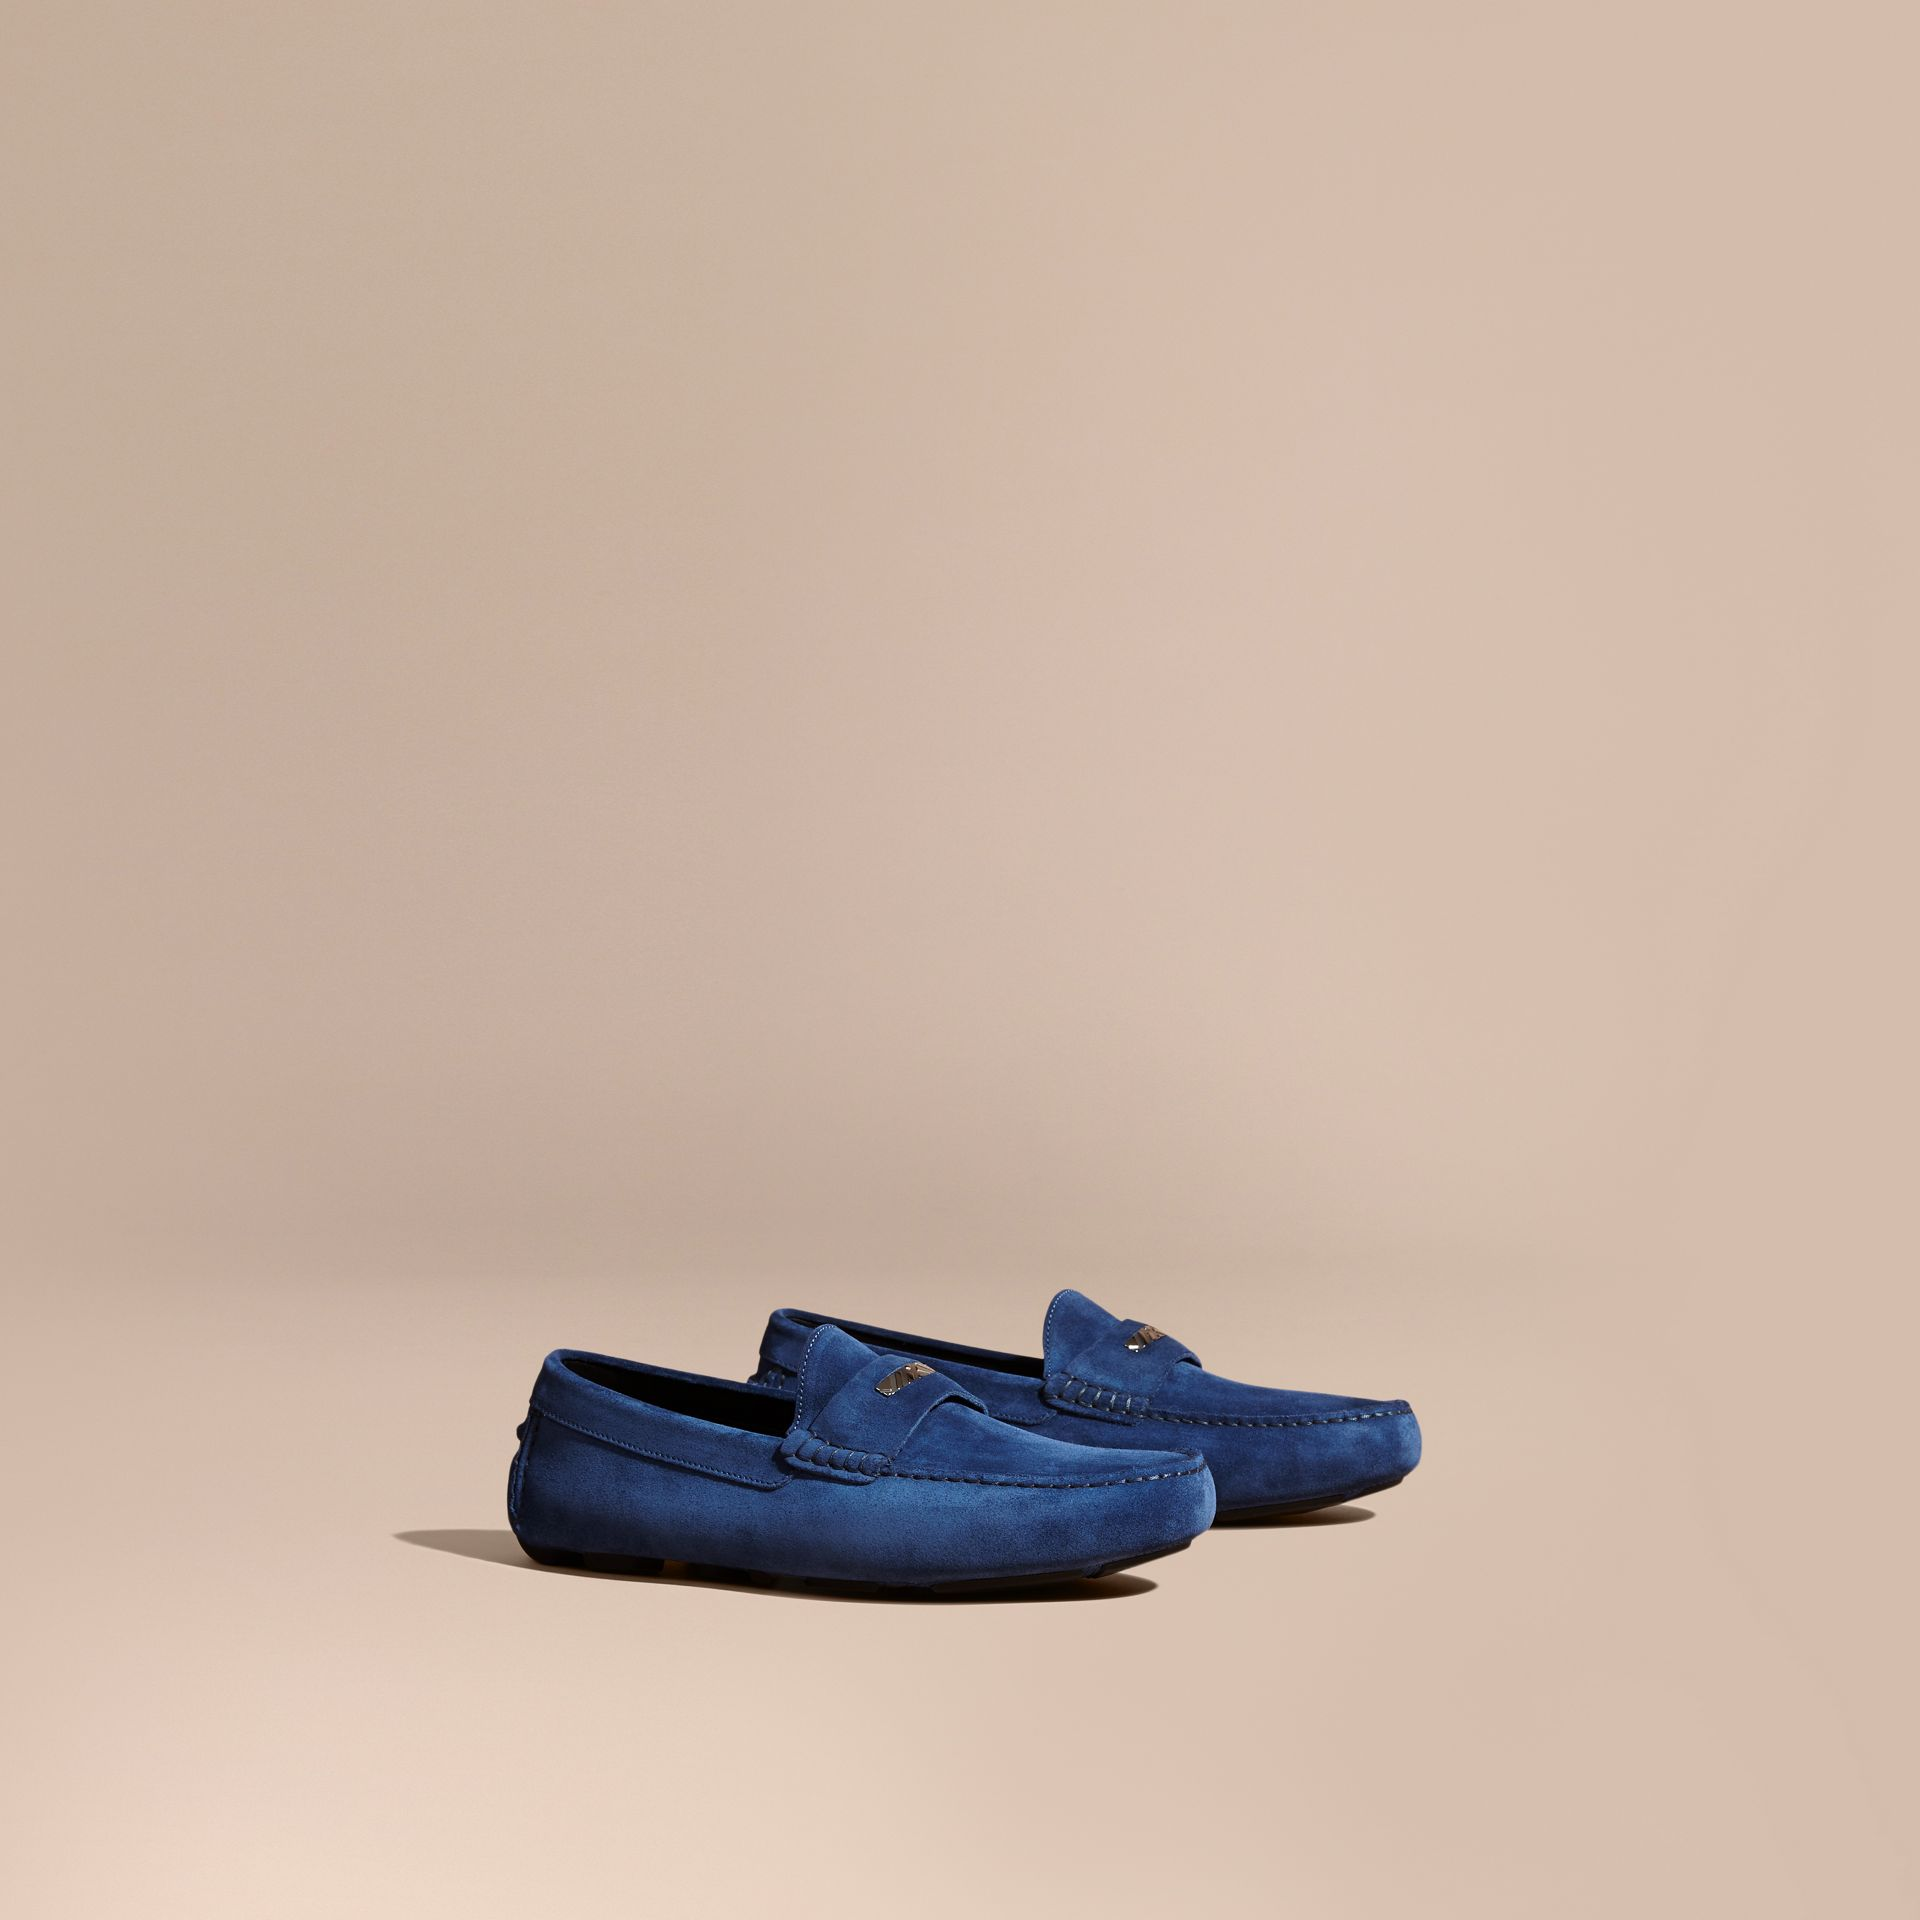 Dragonfly blue Suede Loafers with Engraved Check Detail Dragonfly Blue - gallery image 1